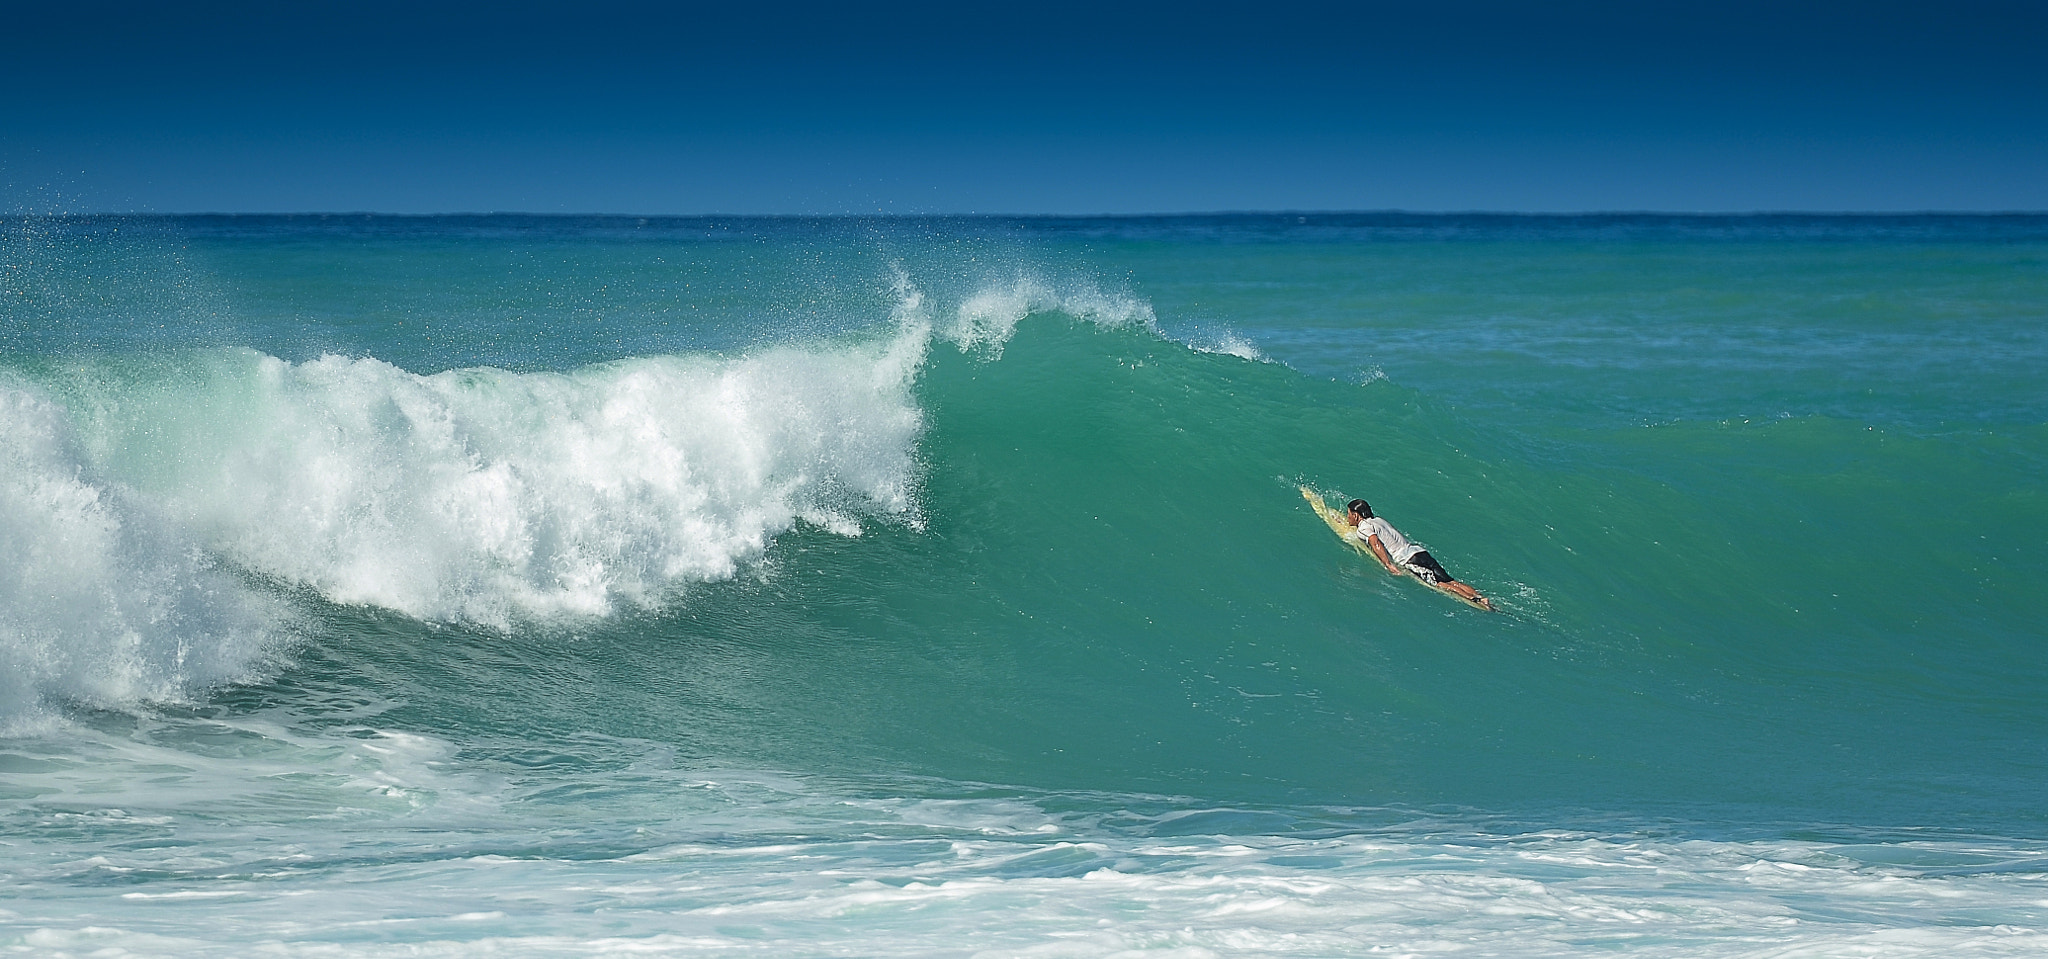 Photograph Surfing in Hawaii by Tin Lung Chao on 500px